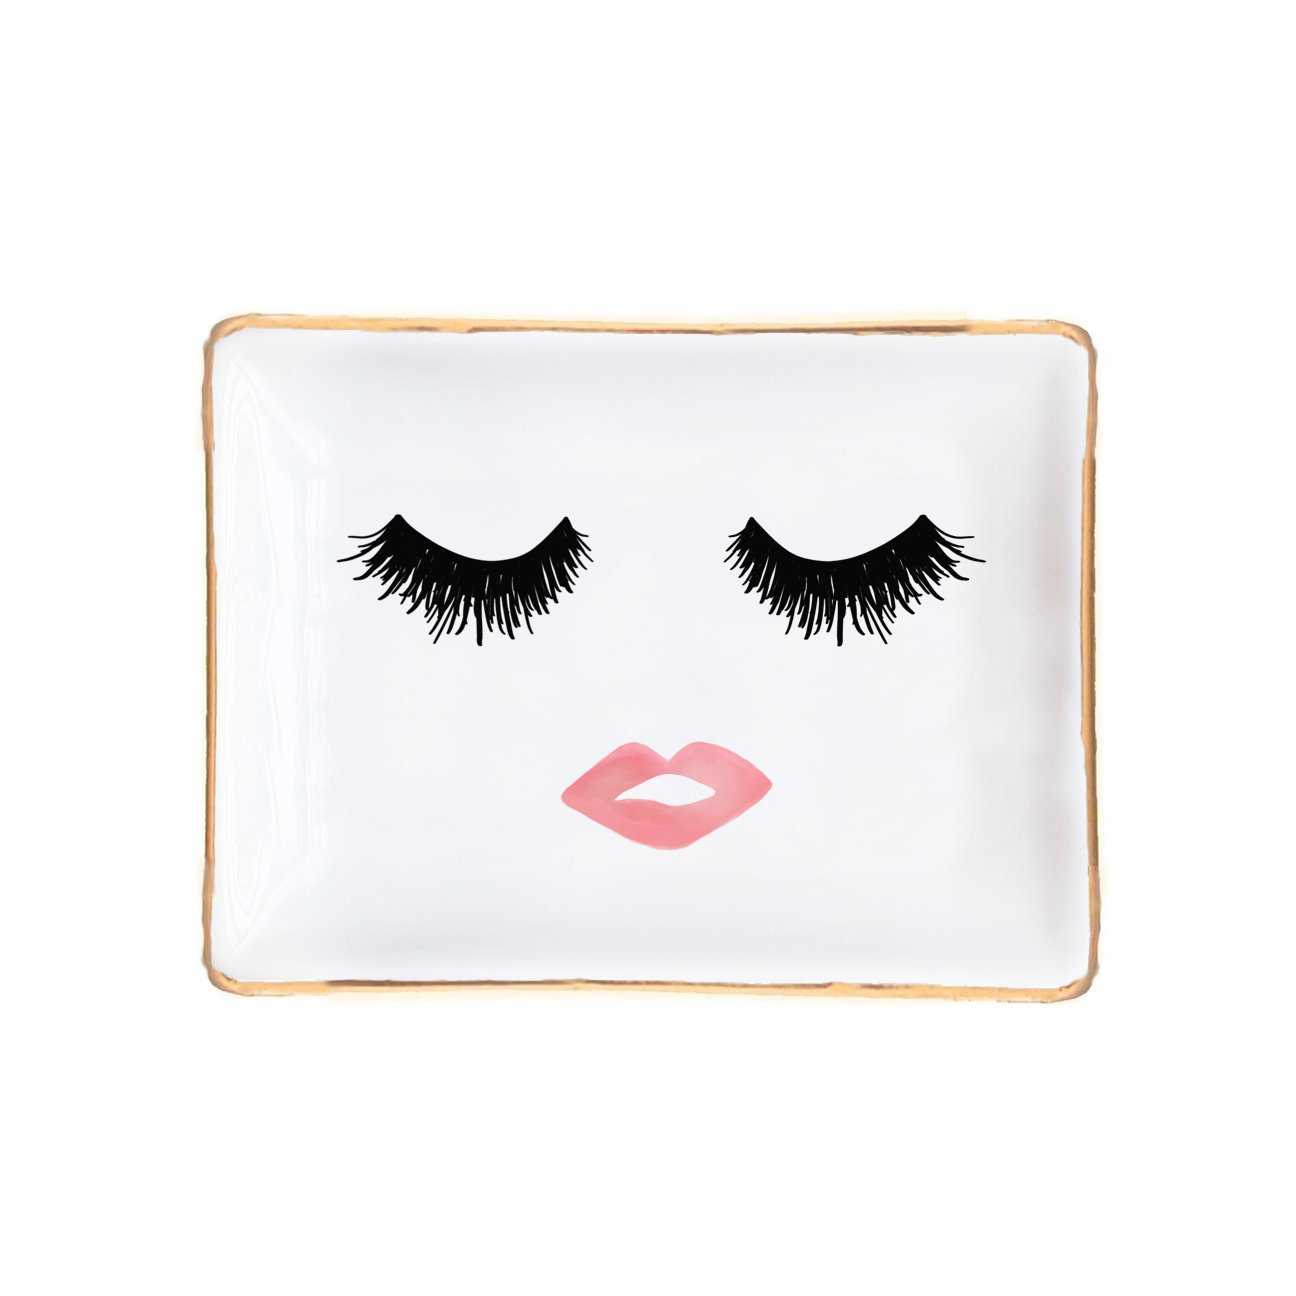 Lashes and Lips Jewelry Dish | Ring Storage Display Bridesmaid Gift for Her Gold Ceramic Organizer Tray Small Office Decor Desk Accessories Hand Drawn